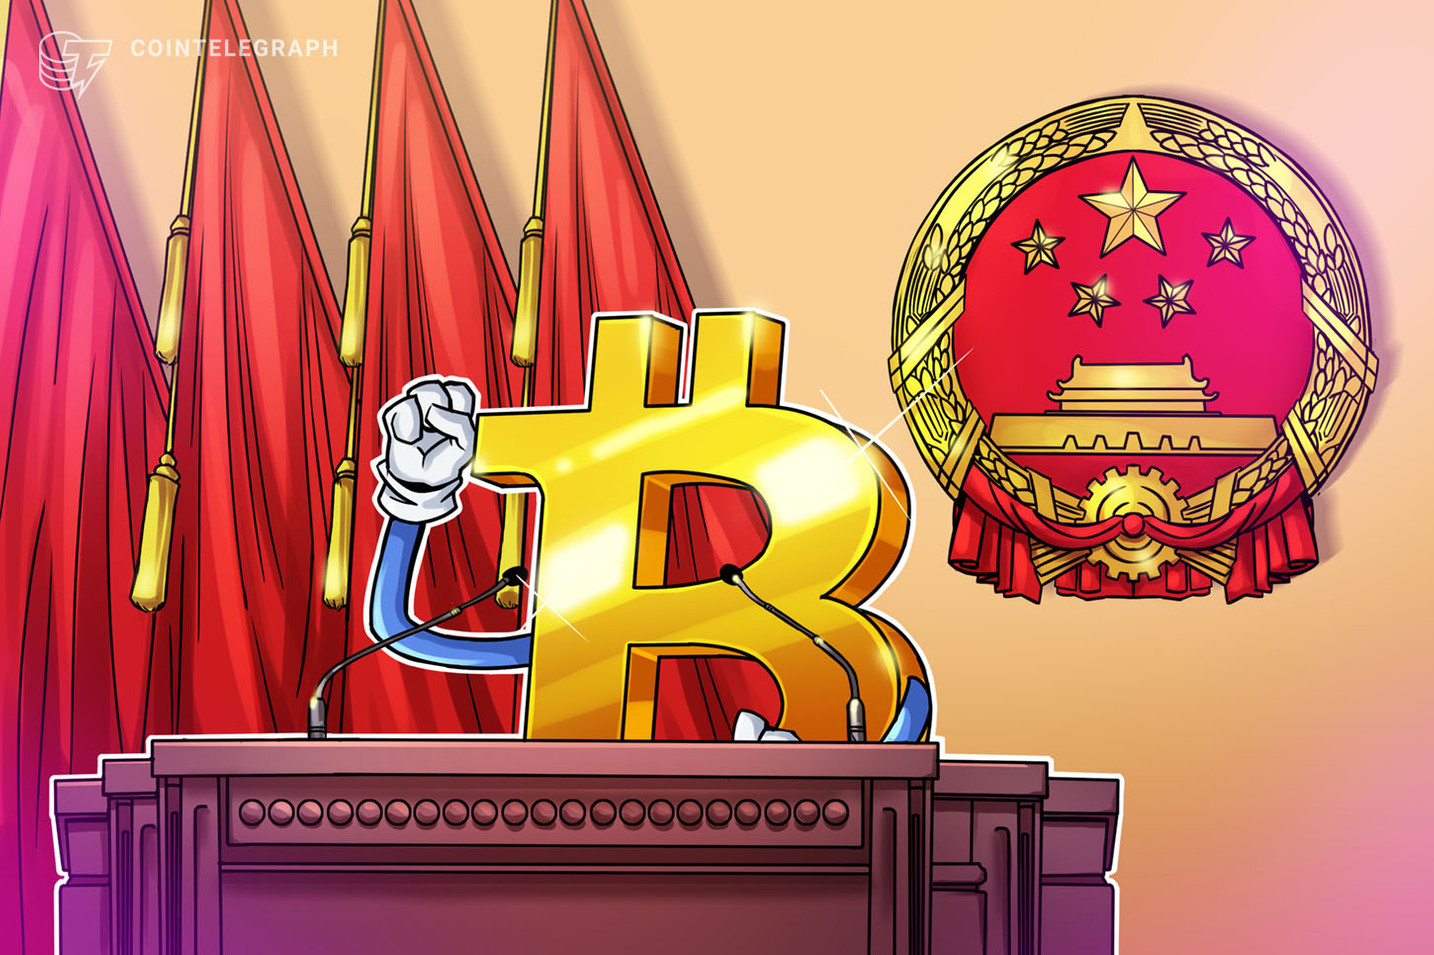 Bitcoin Cannot Be Protected by Chinese Law, Local Court Rules